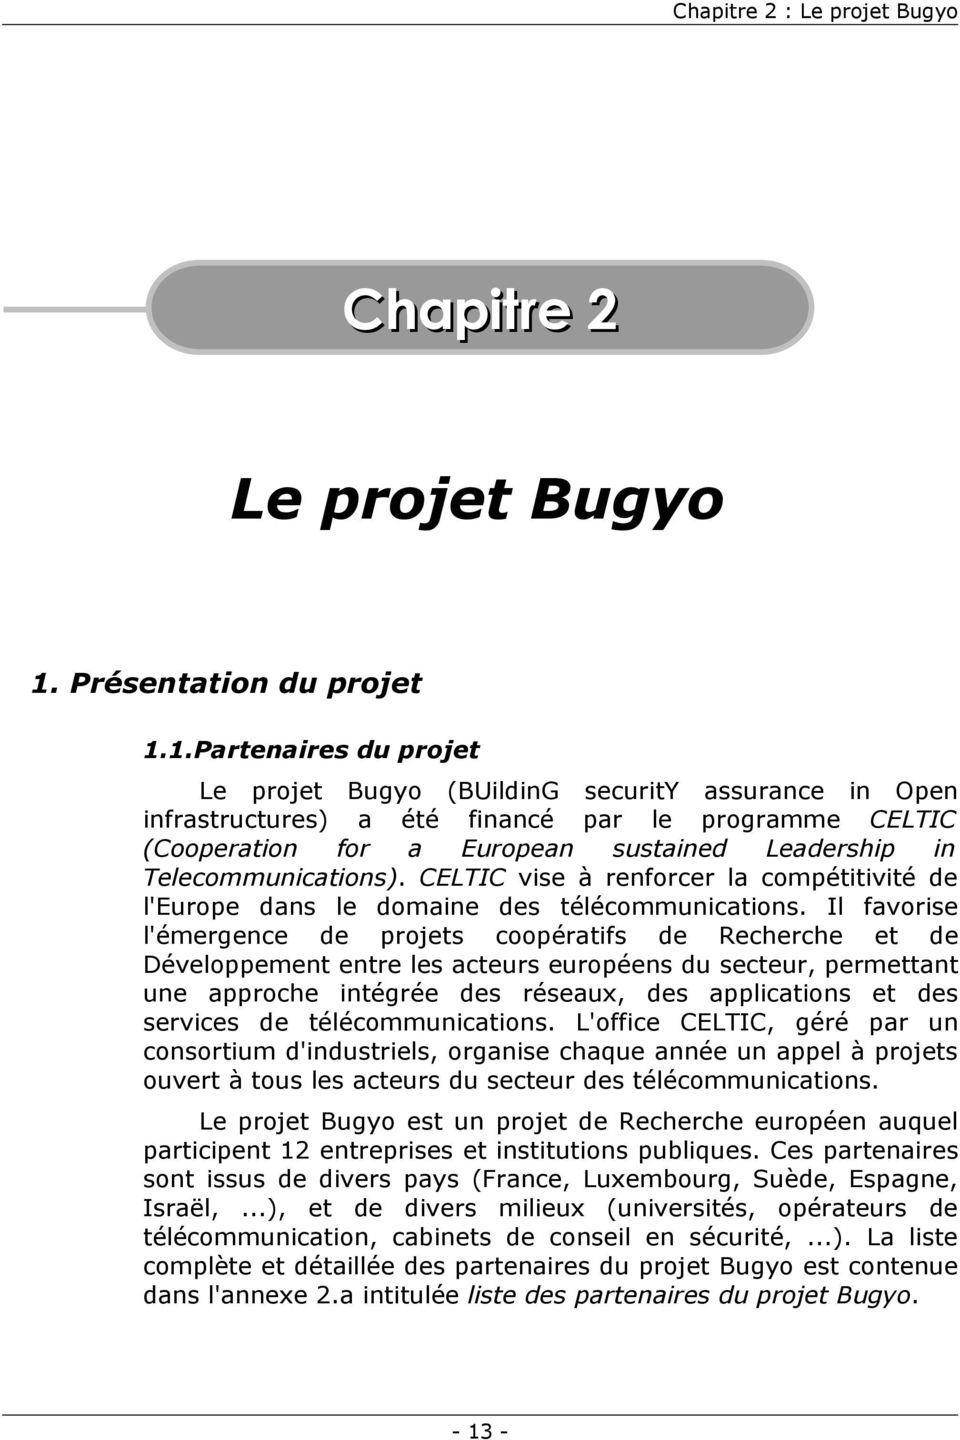 1.Partenaires du projet Le projet Bugyo (BUildinG security assurance in Open infrastructures) a été financé par le programme CELTIC (Cooperation for a European sustained Leadership in